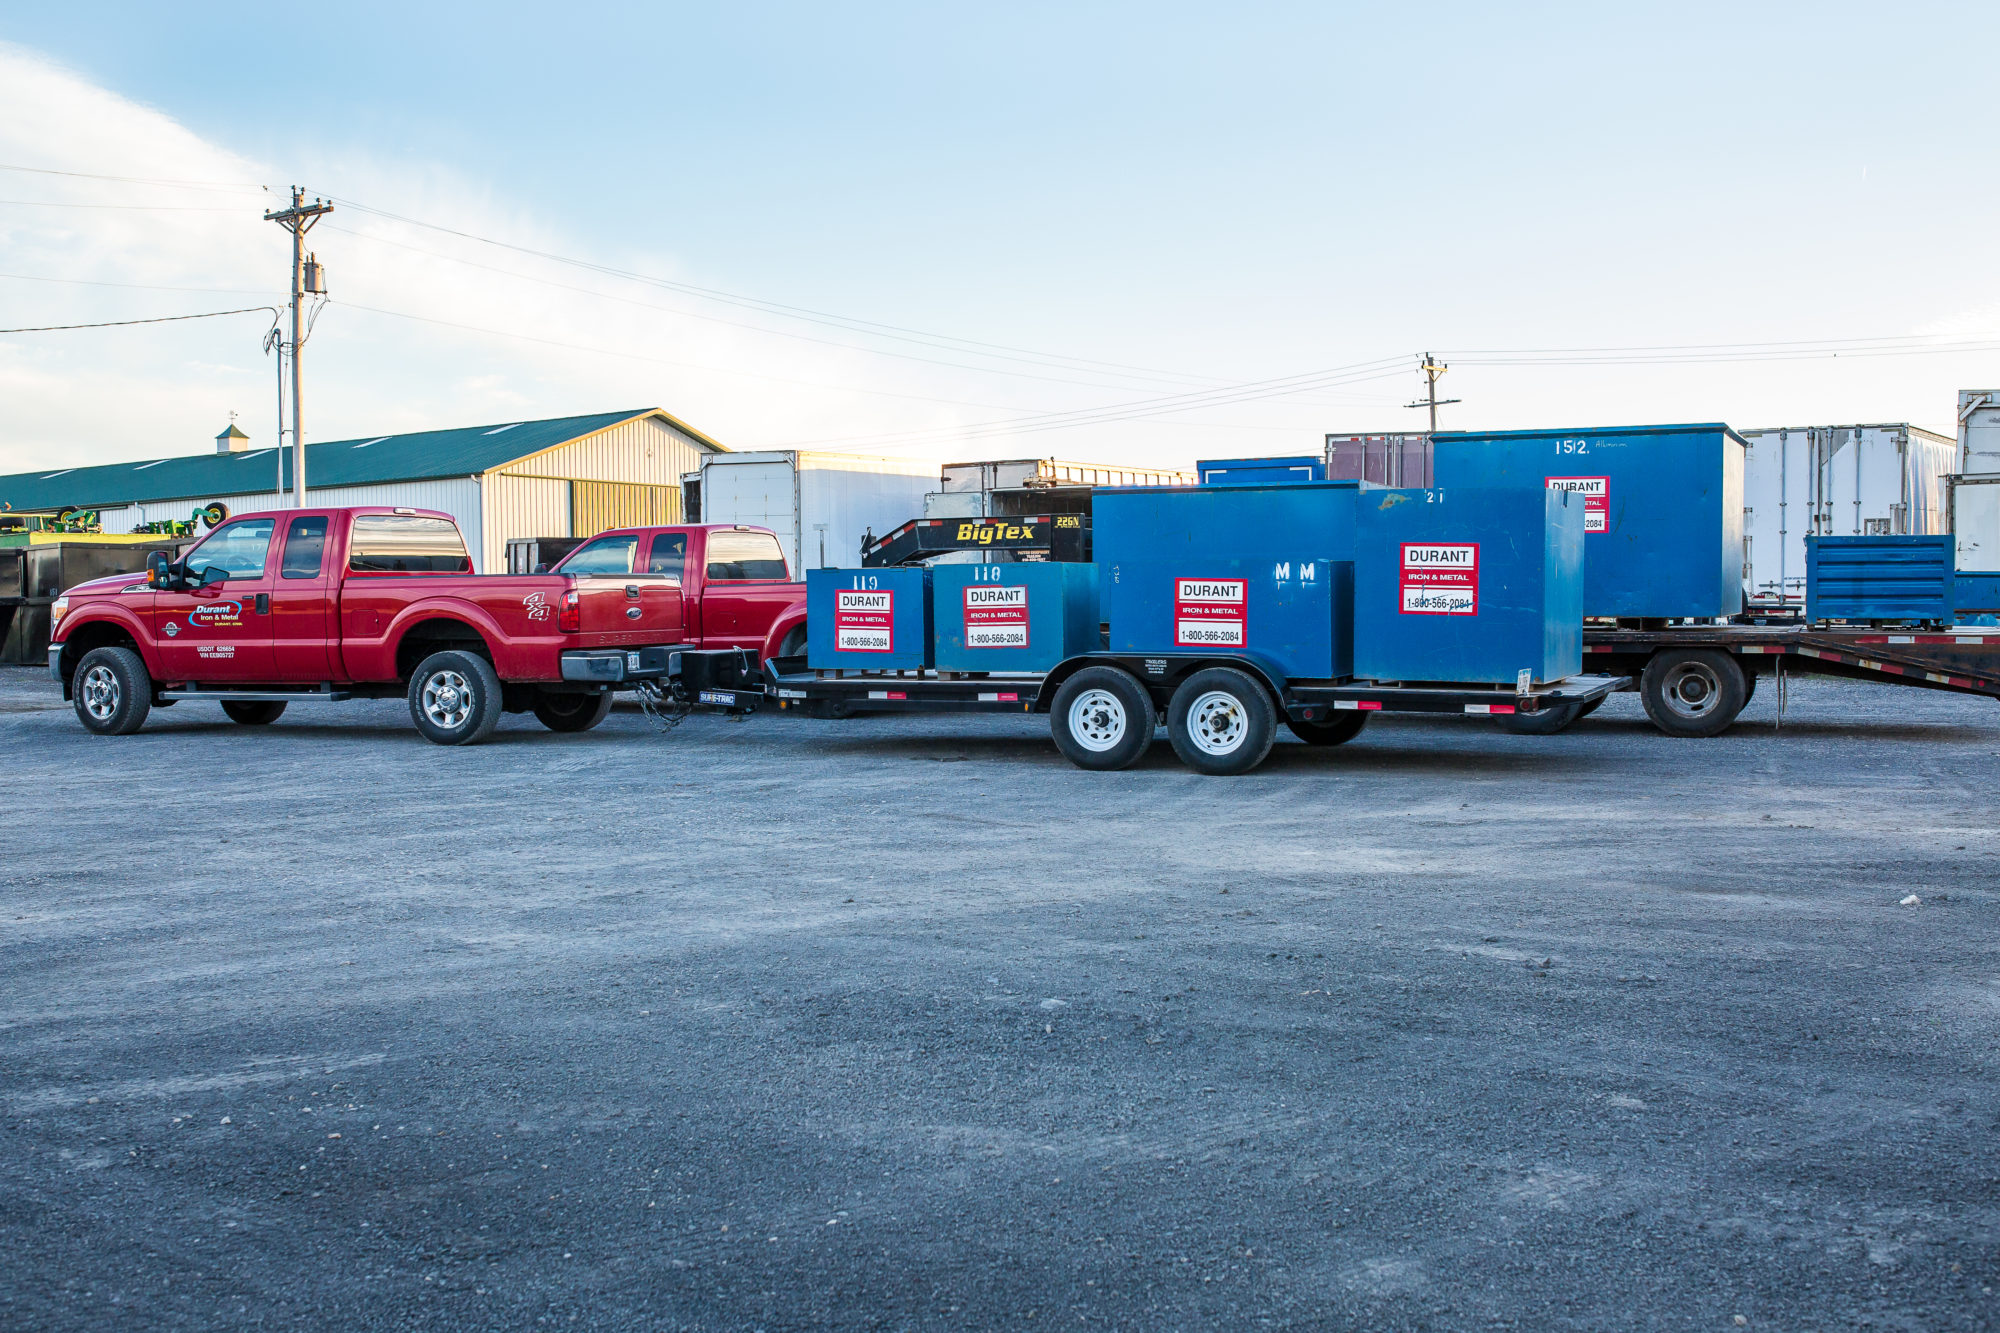 Trucks and containers for on-site collection